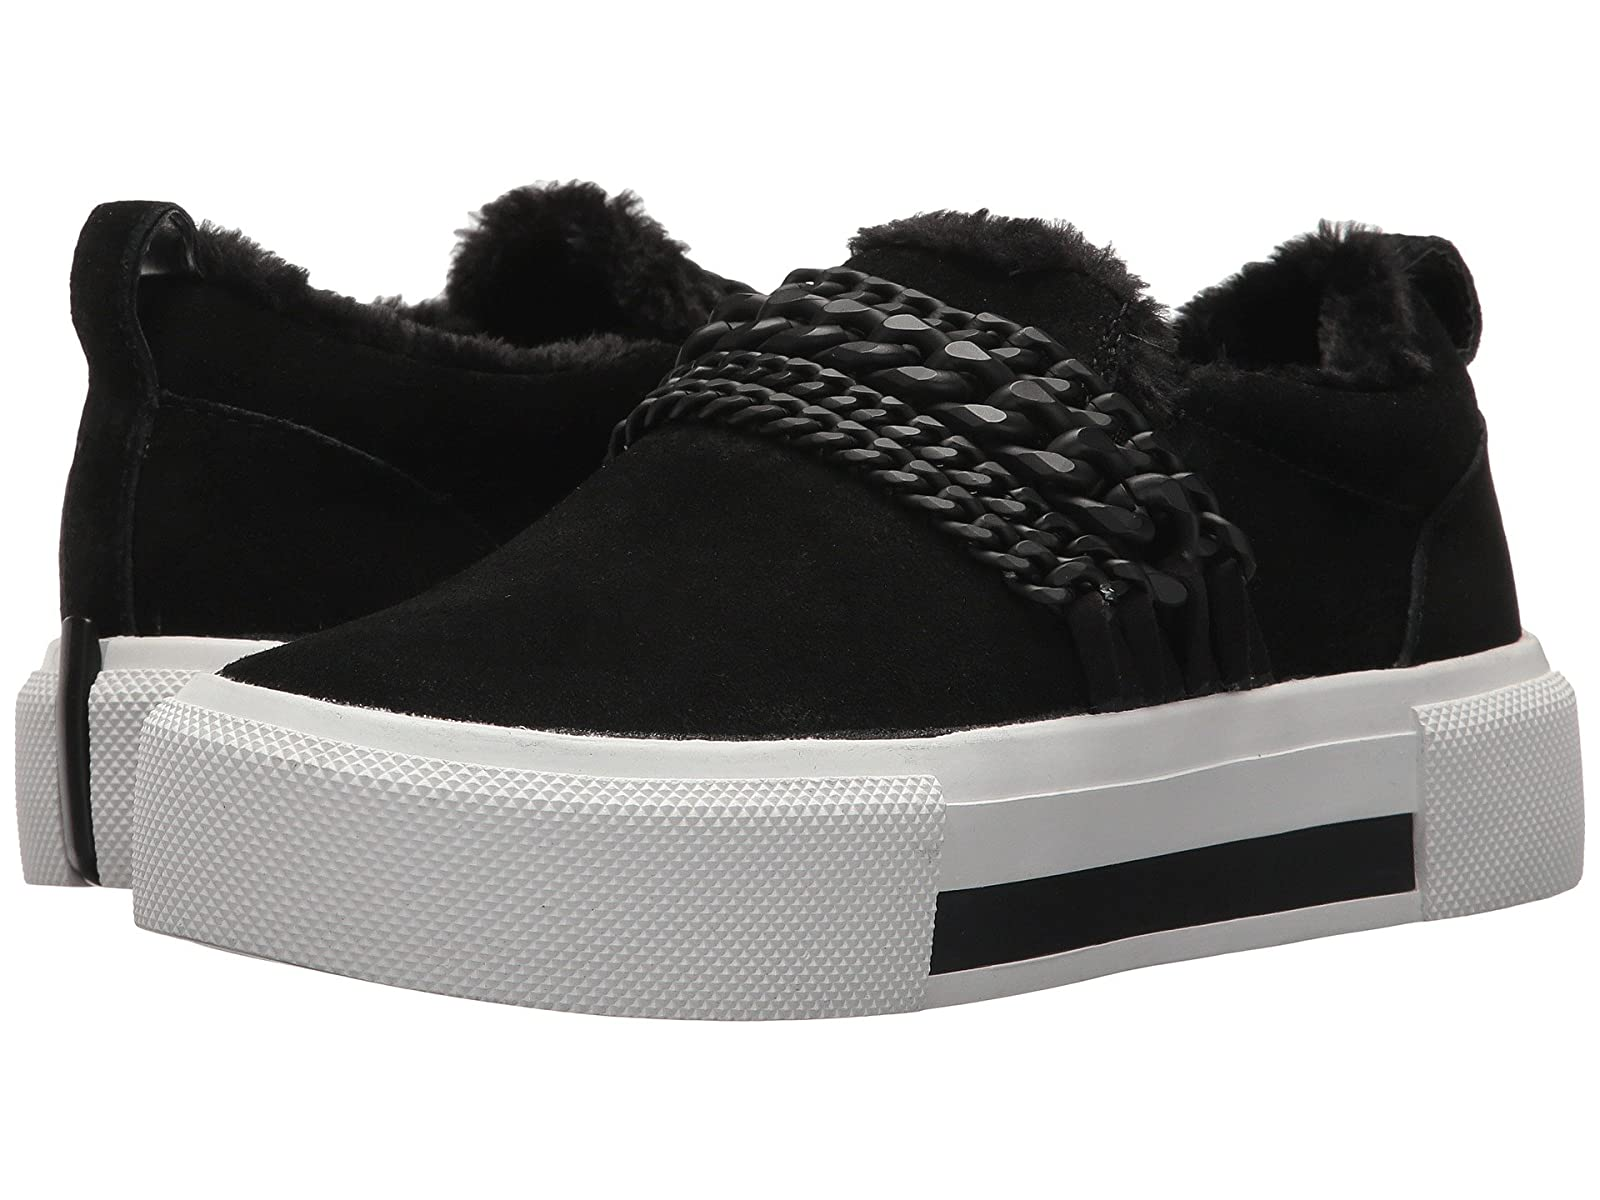 KENDALL + KYLIE ToryCheap and distinctive eye-catching shoes